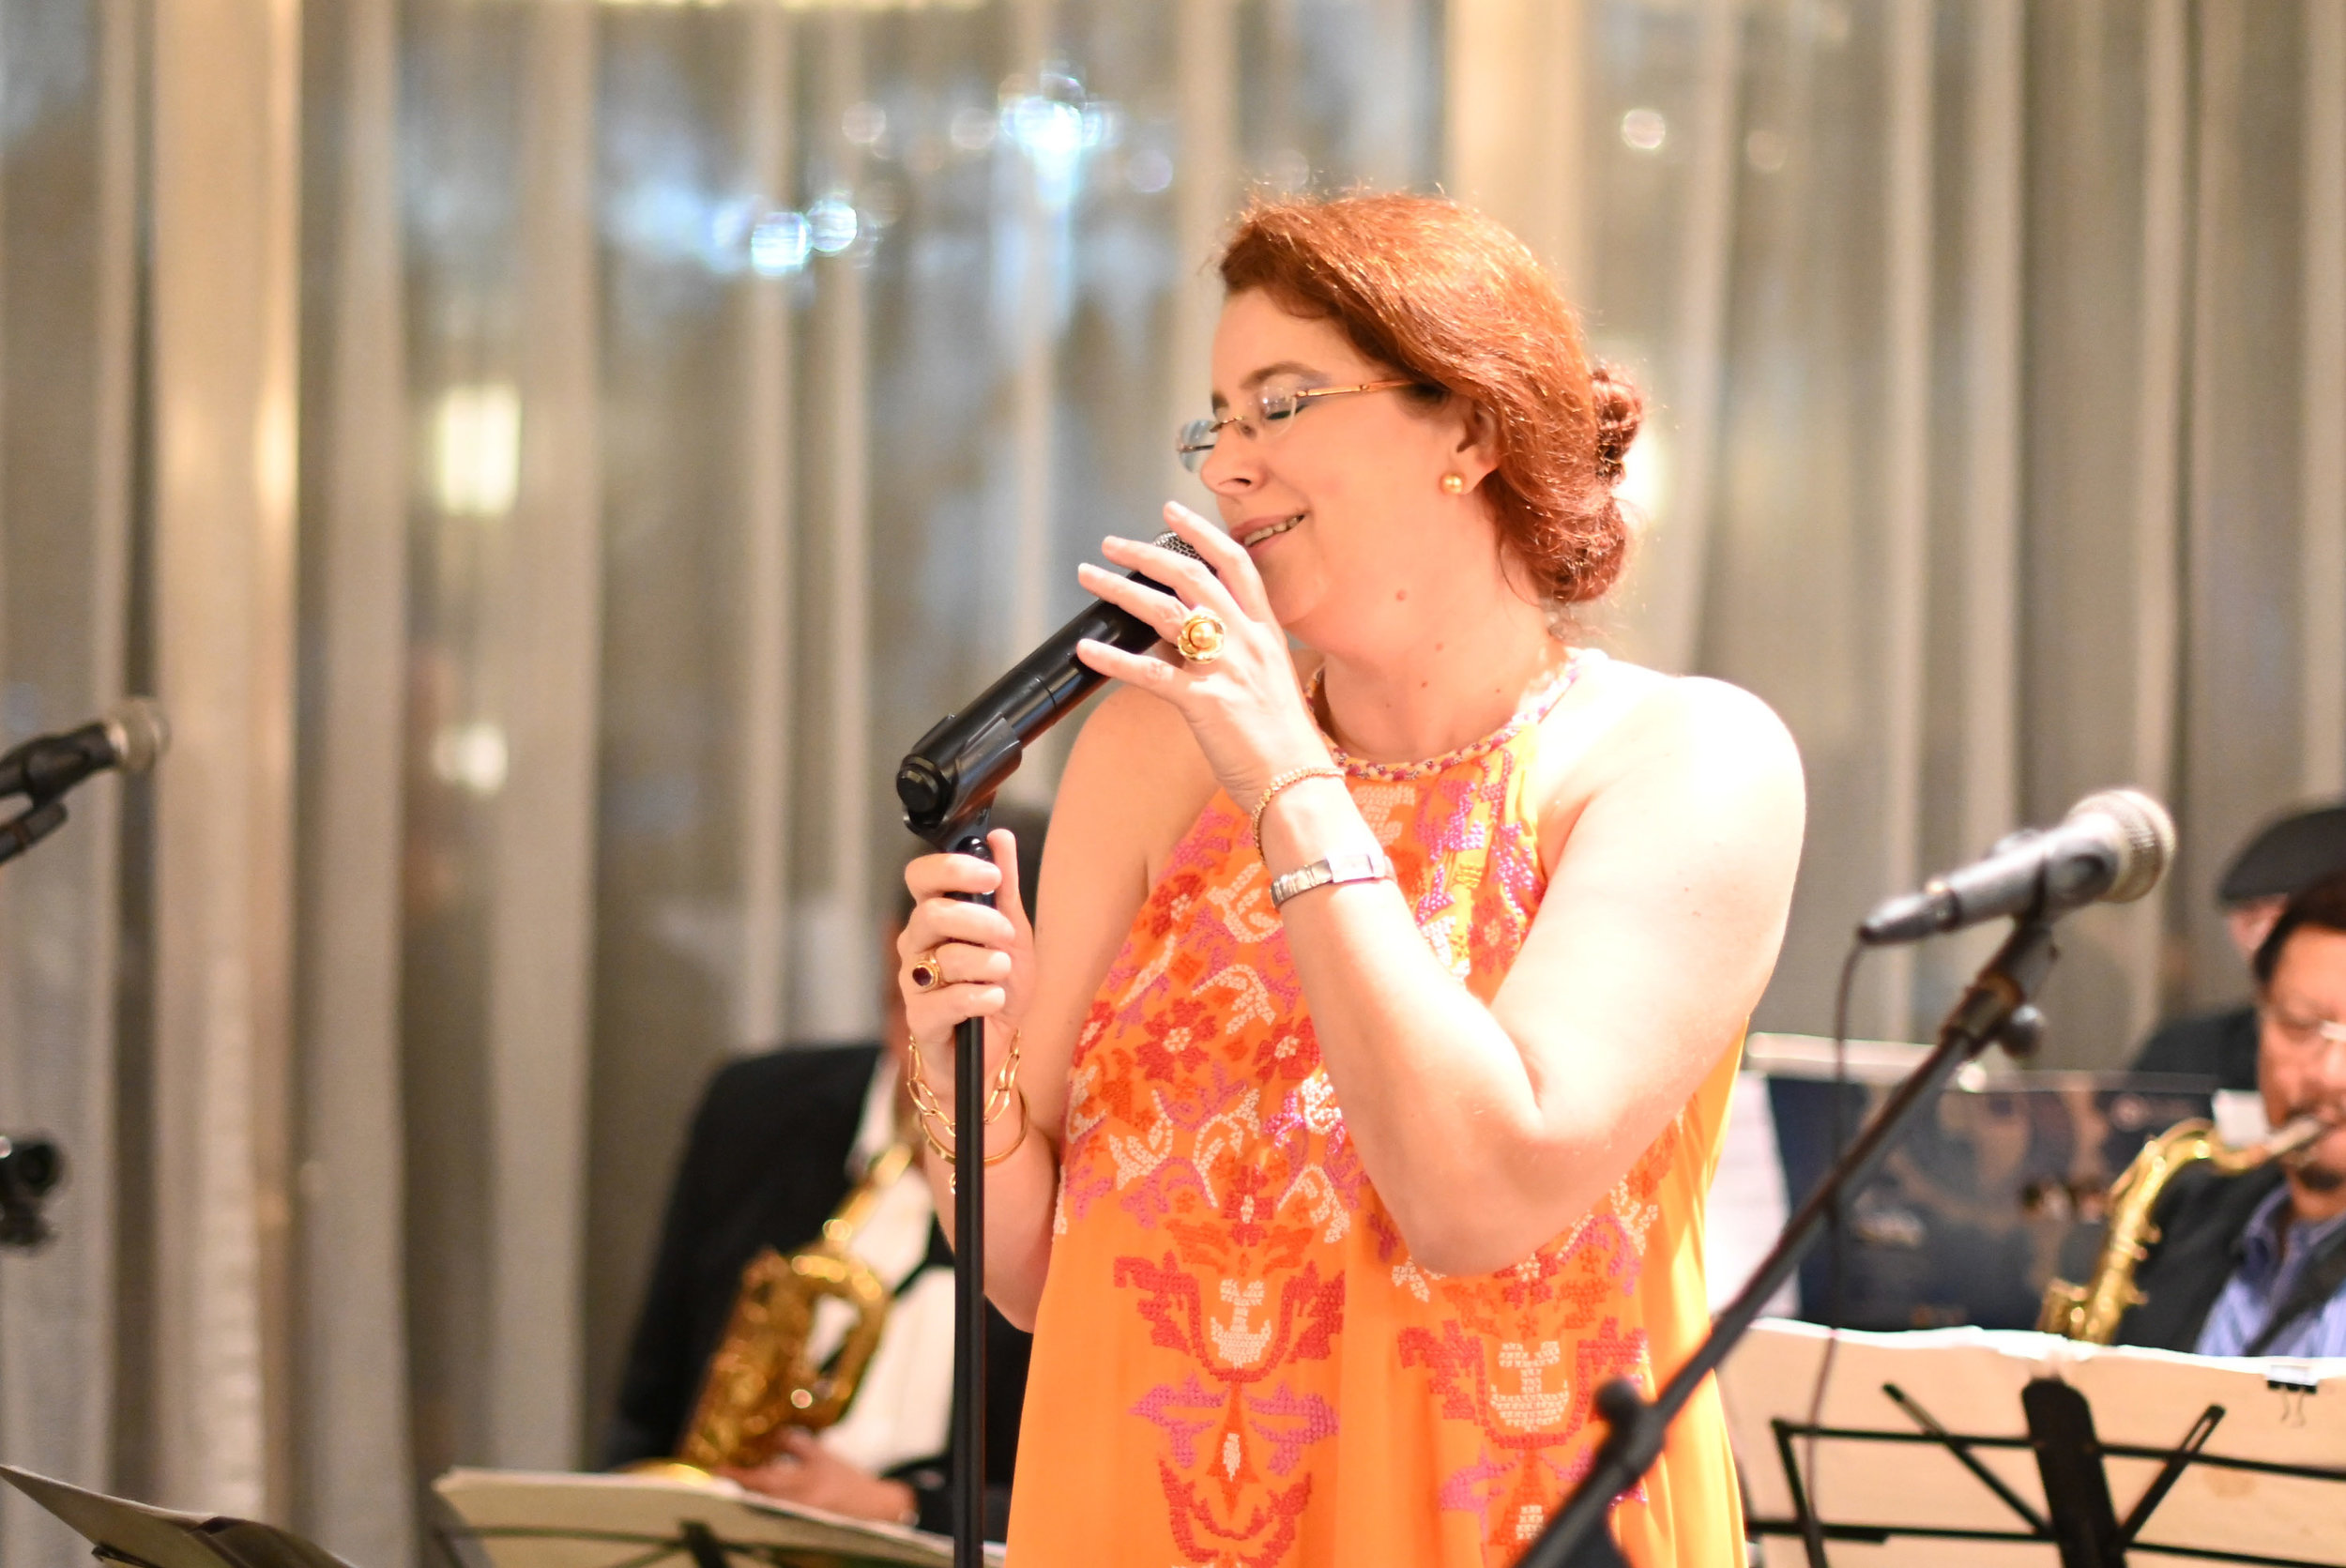 Consul Cécile Thoen sings with a jazz ensemble.